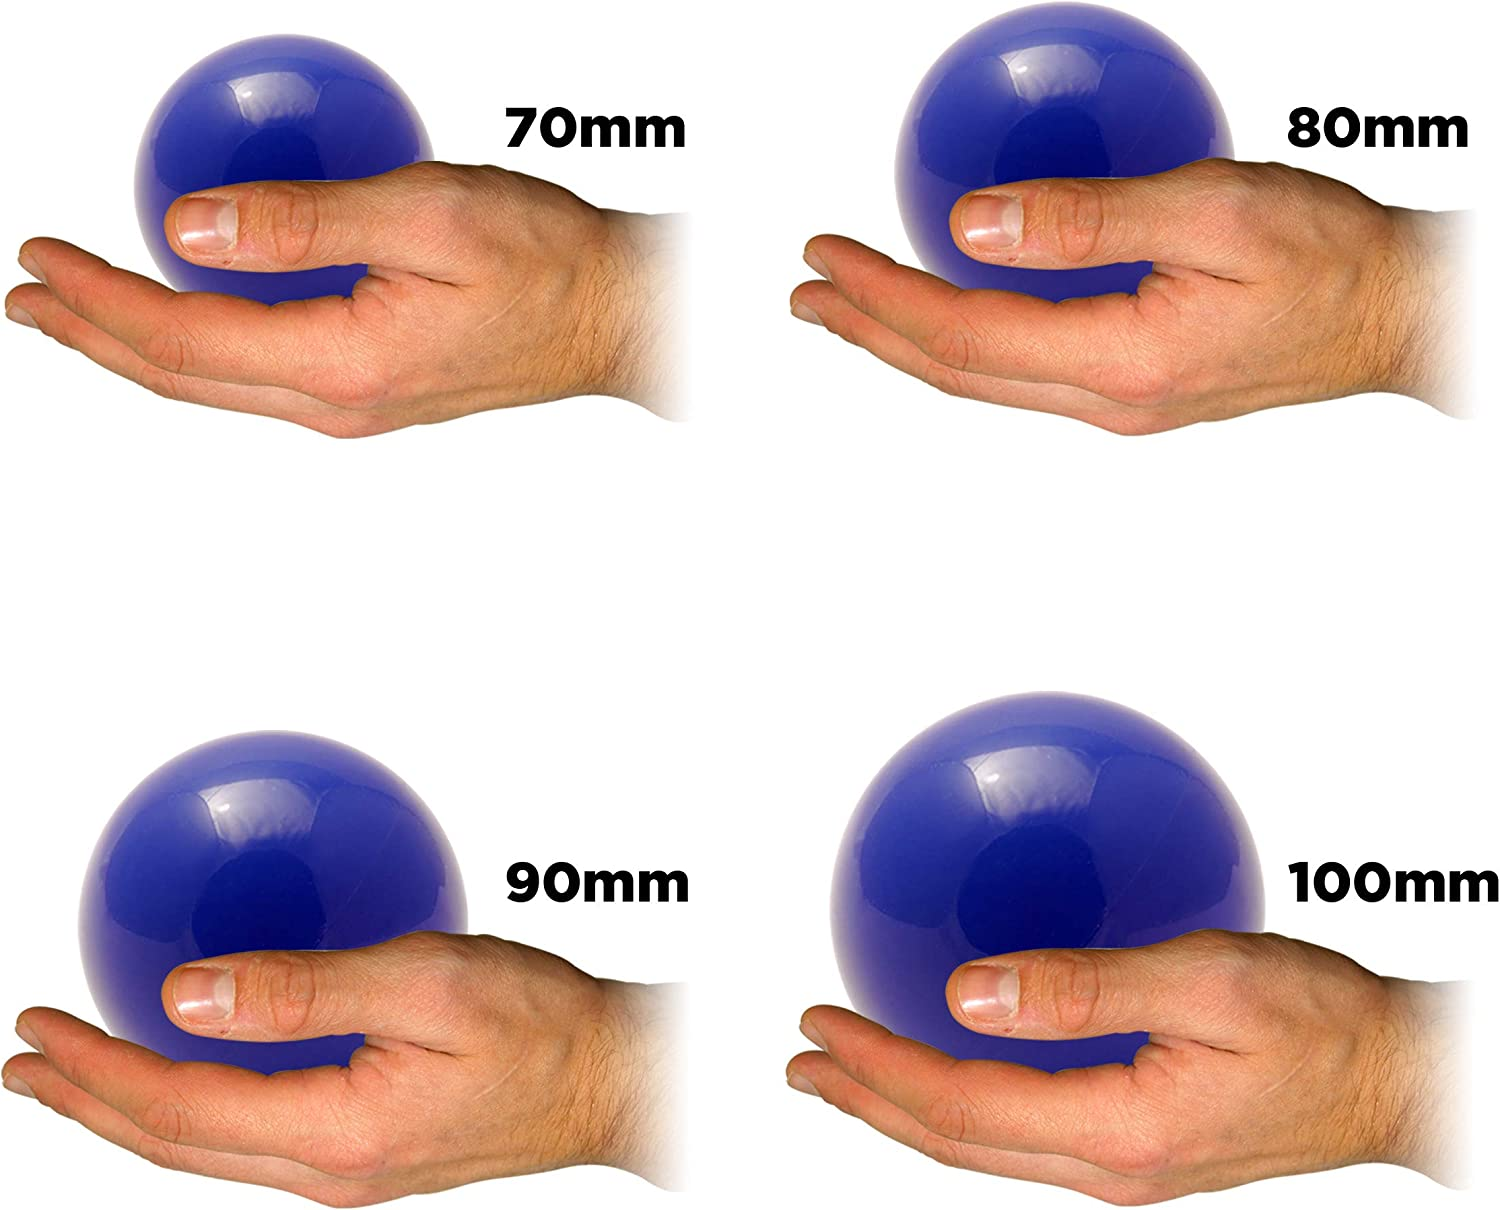 Pink, 80mm Set Includes 1 Play Stage Ball in Size Chosen Body Rolling Manipulation and Ball Stage Juggling for Contact Juggling Play Stage Balls in 4 Sizes! Includes Flames N Games Bag